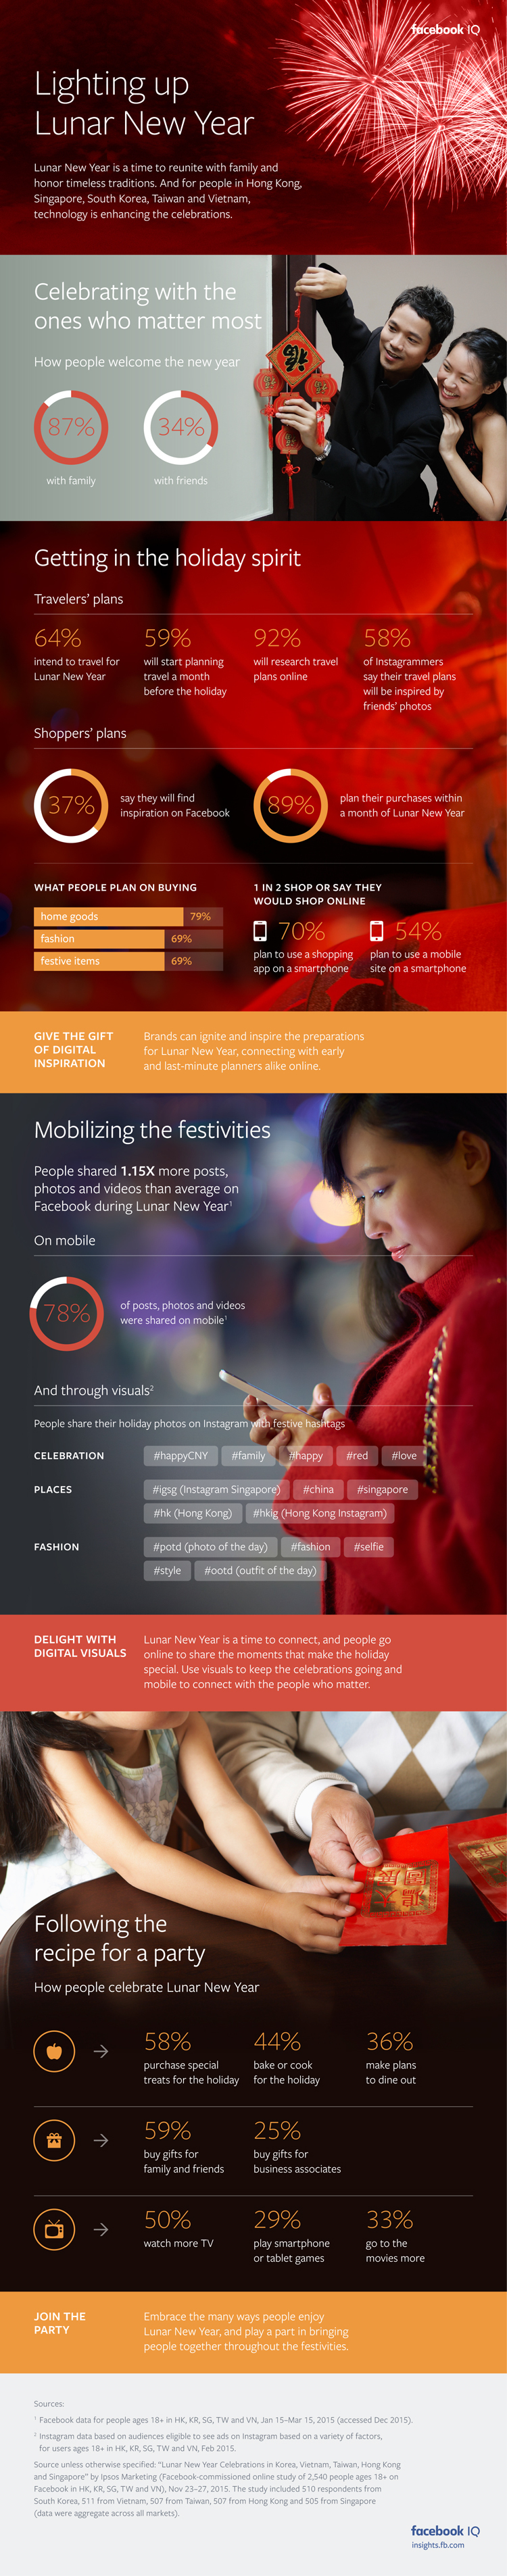 Facebook Releases Report into How People Use Social During Lunar New Year [Infographic] | Social Media Today